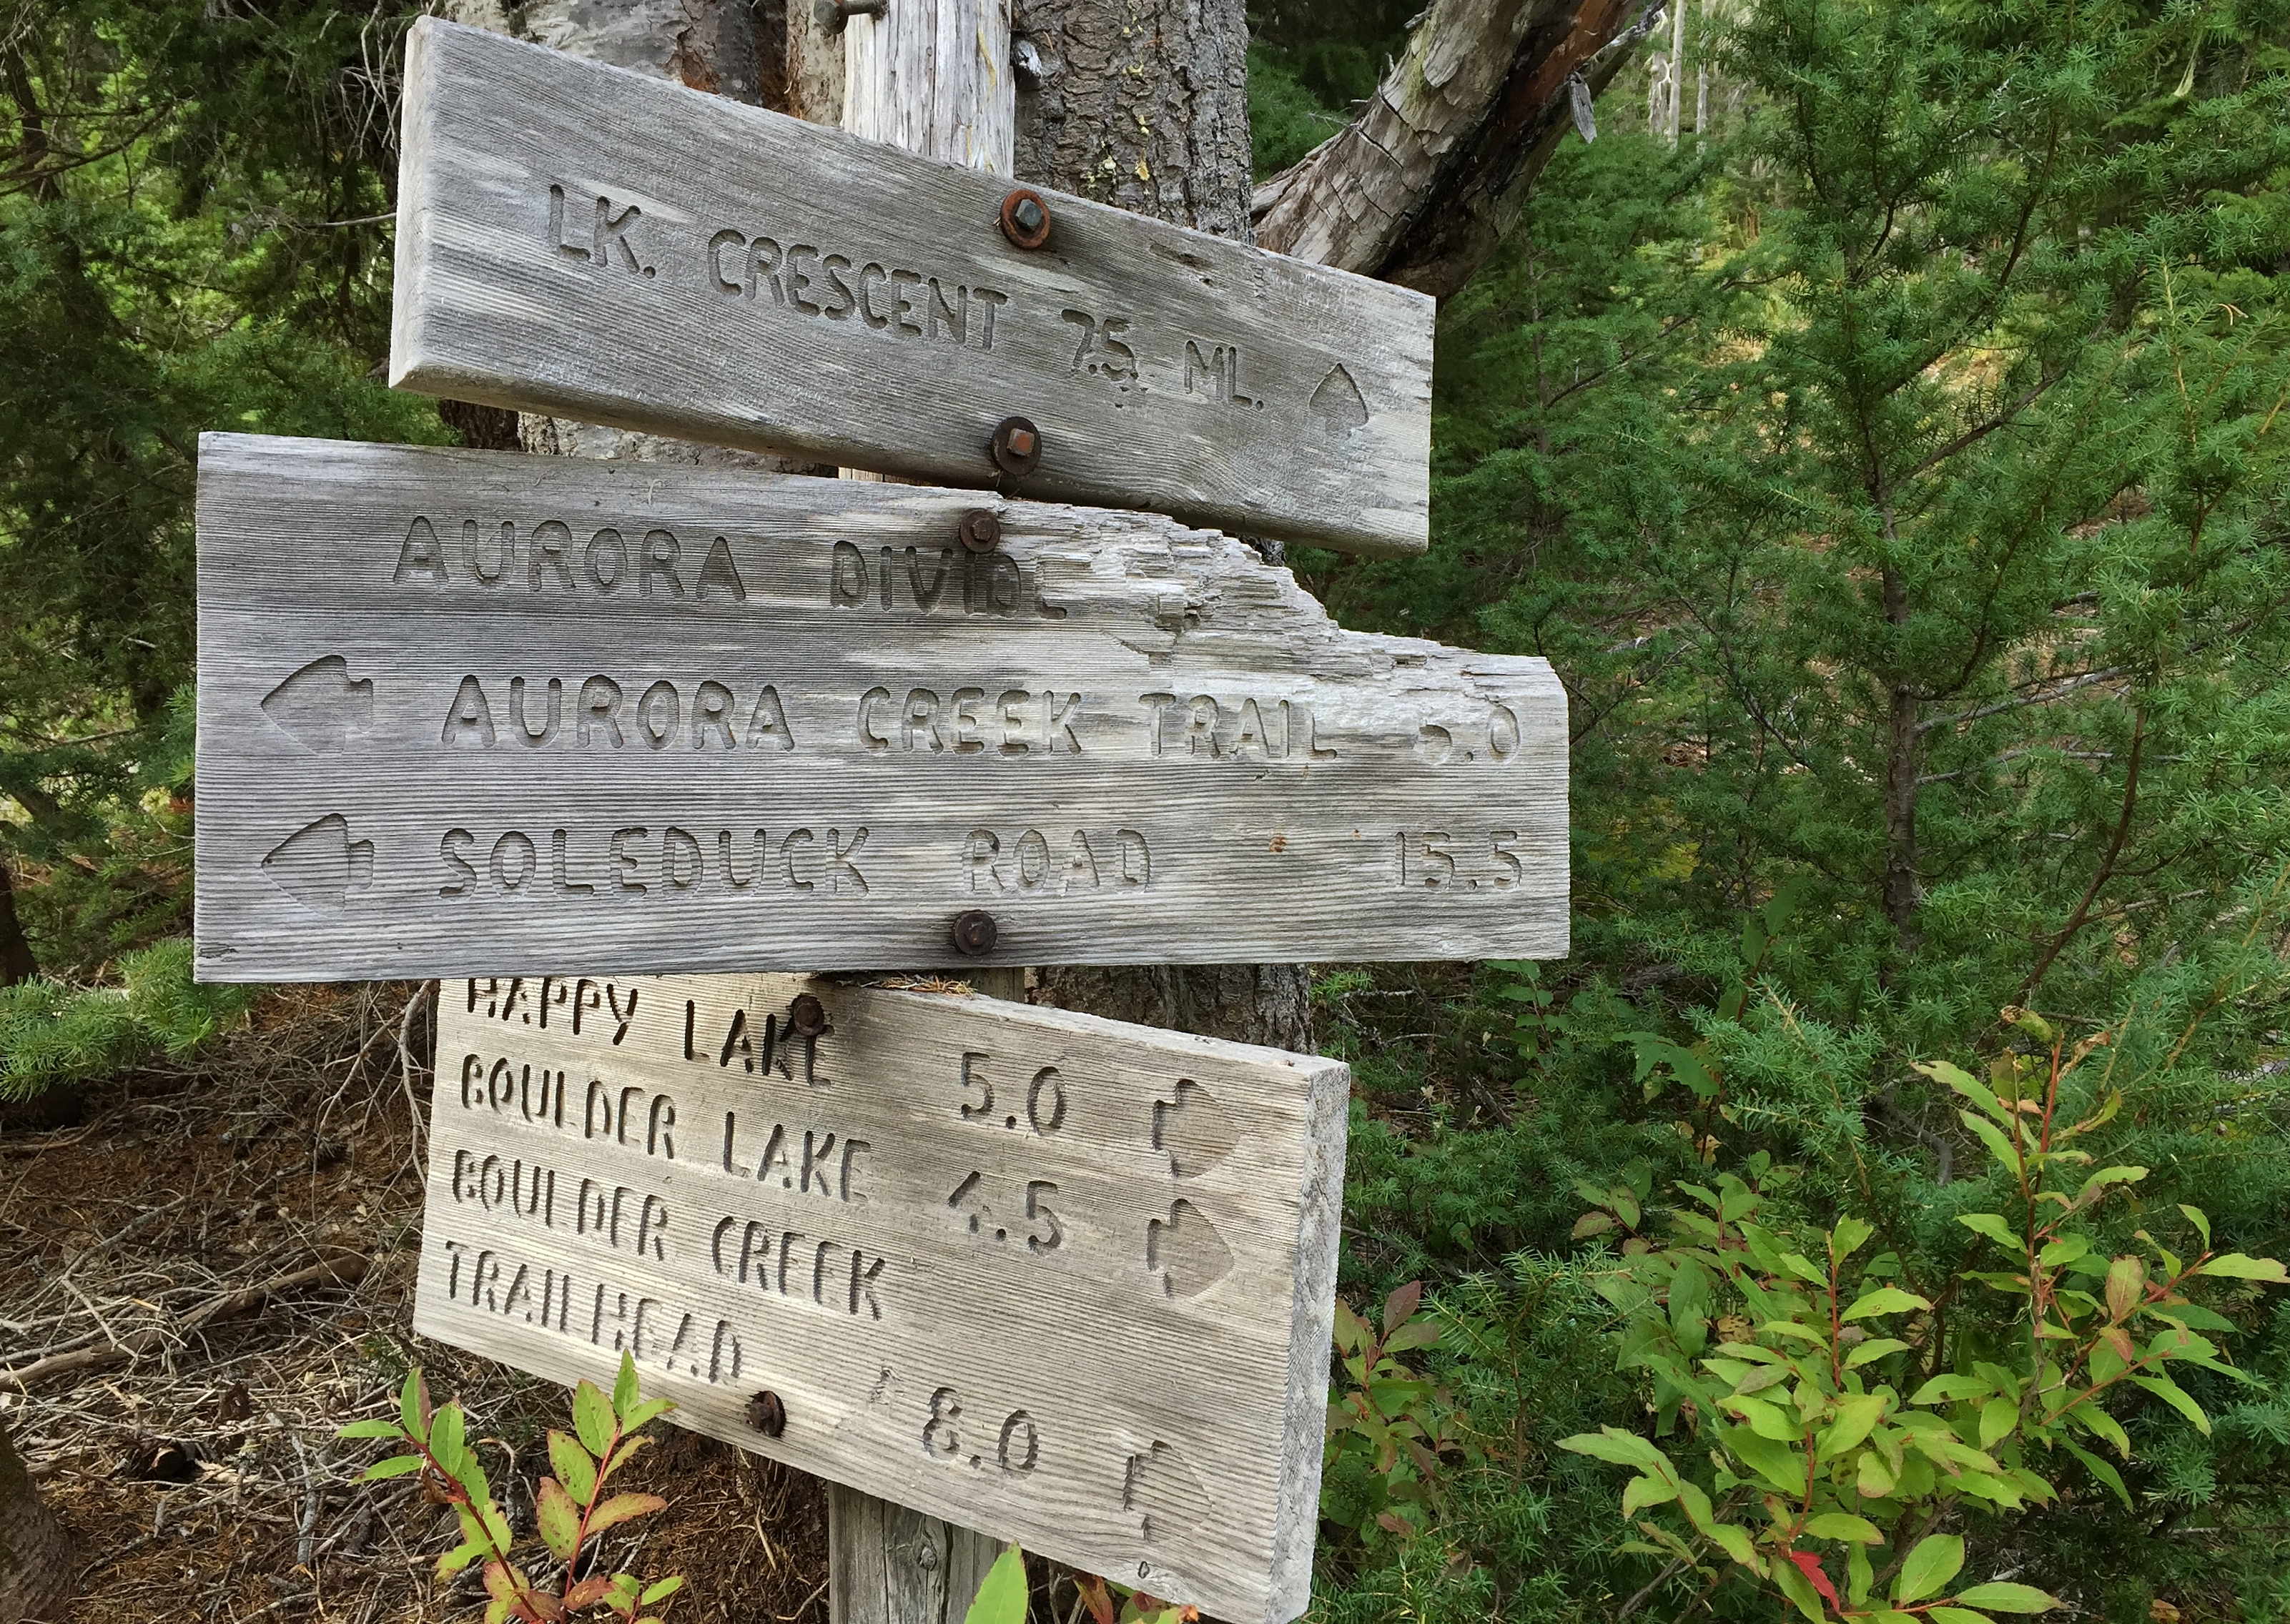 At approximately 7.50 miles/12.00 km from the Marymere Falls trailhead, the Aurora Divide Trail ends at its junction with the Happy Lake Ridge Trail amid scrubby forest typical of local ridgetops. Aurora Divide Trail, September 14, 2015.